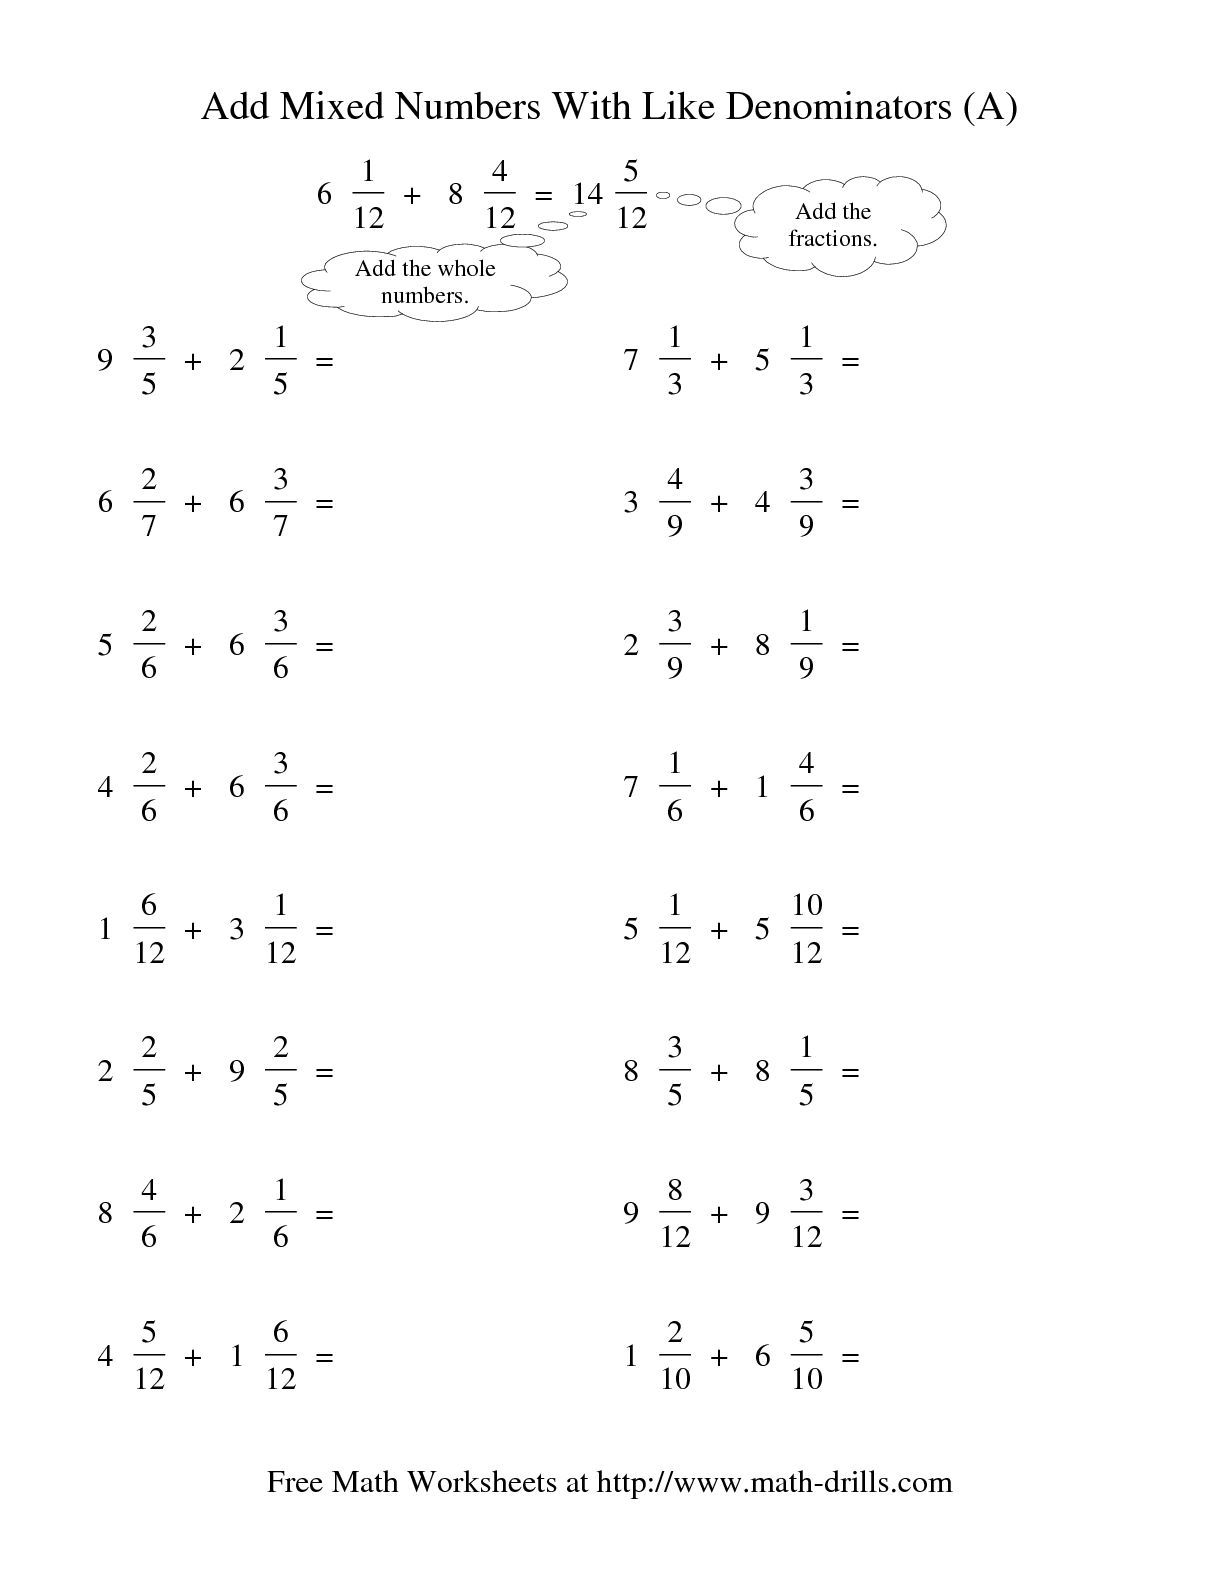 4 Adding Fractions With Like Denominators Worksheets 2